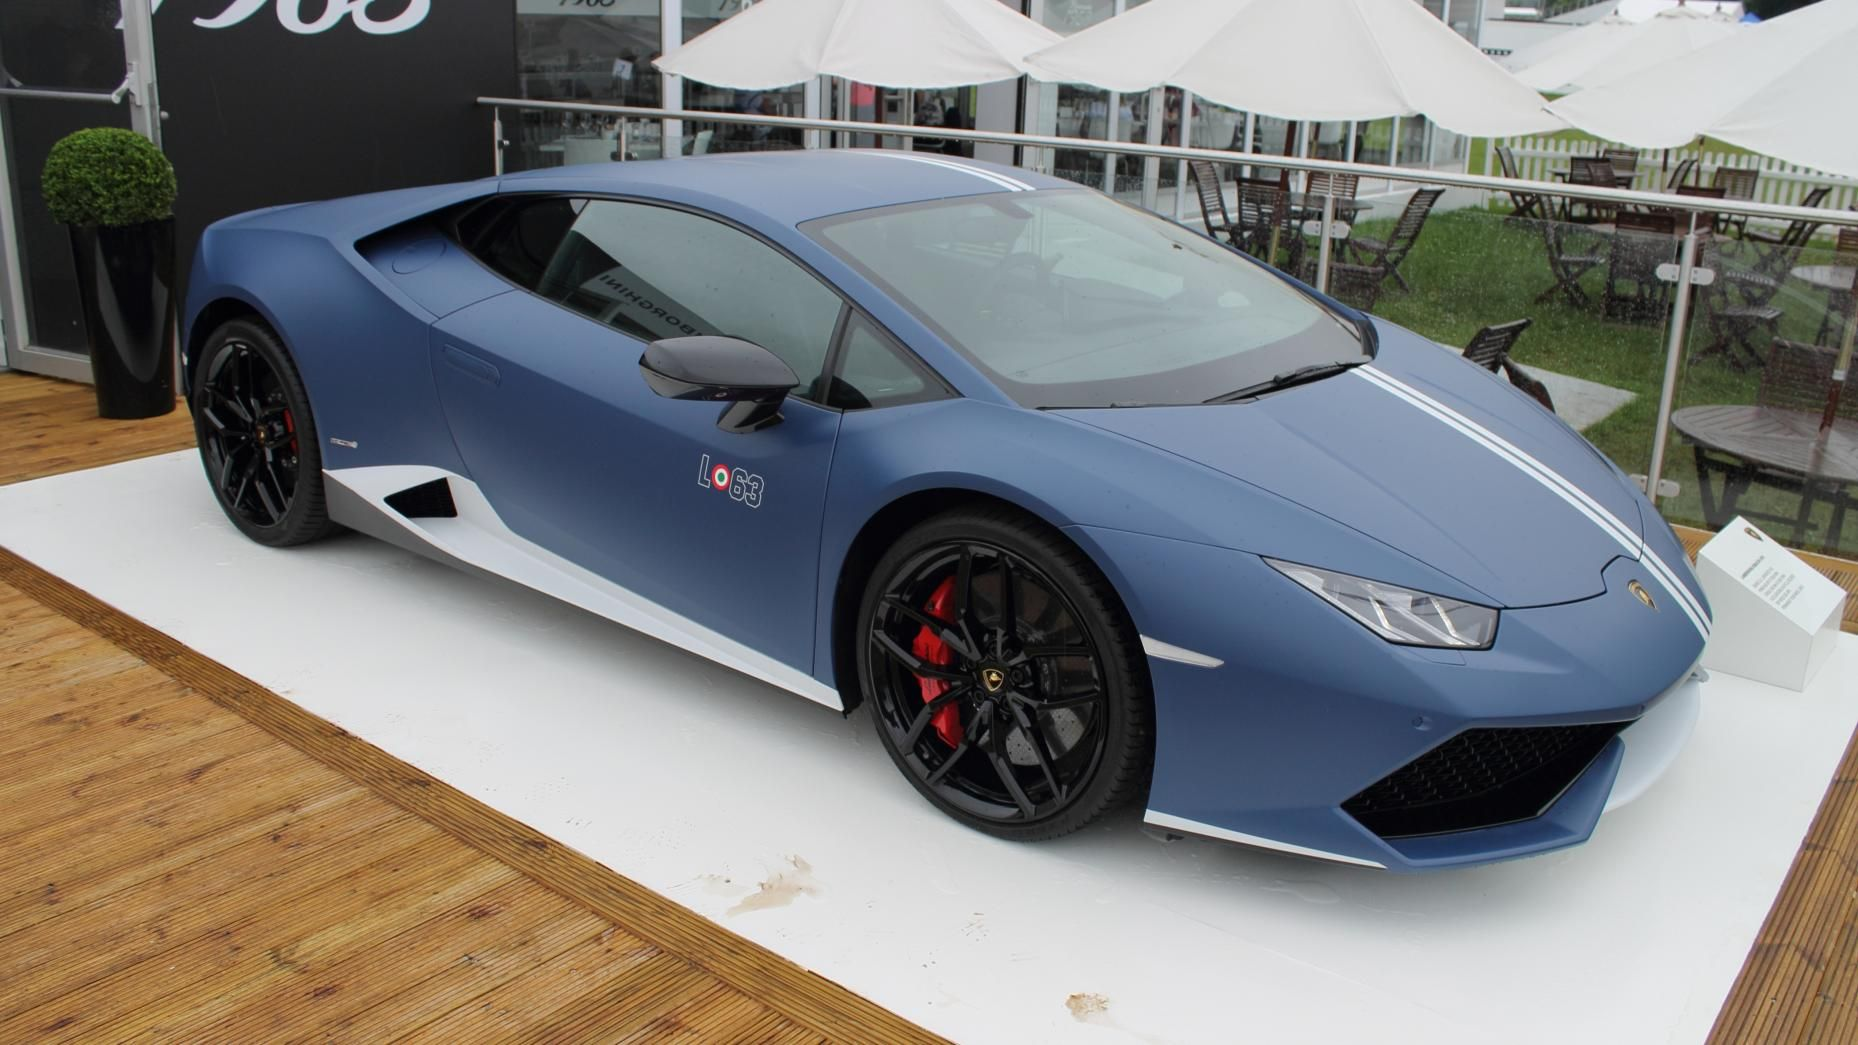 Leasing Is Simple With Premier Learn More About Financing A Lamborghini And Apply Online At Www Pfsllc Com Cool Sports Cars Lamborghini Cars Lamborghini